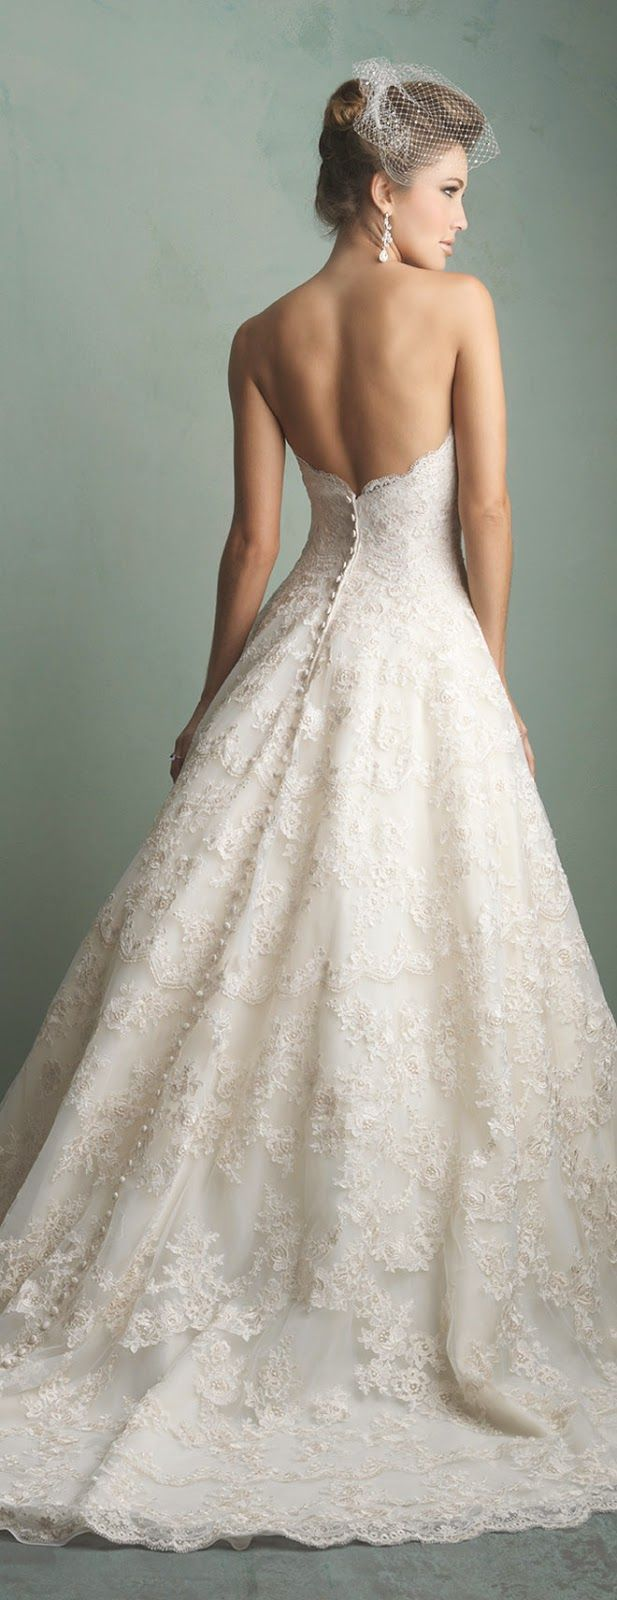 Allure Bridals Fall 2014 - Belle the Magazine . The Wedding Blog For The Sophisticated Bride